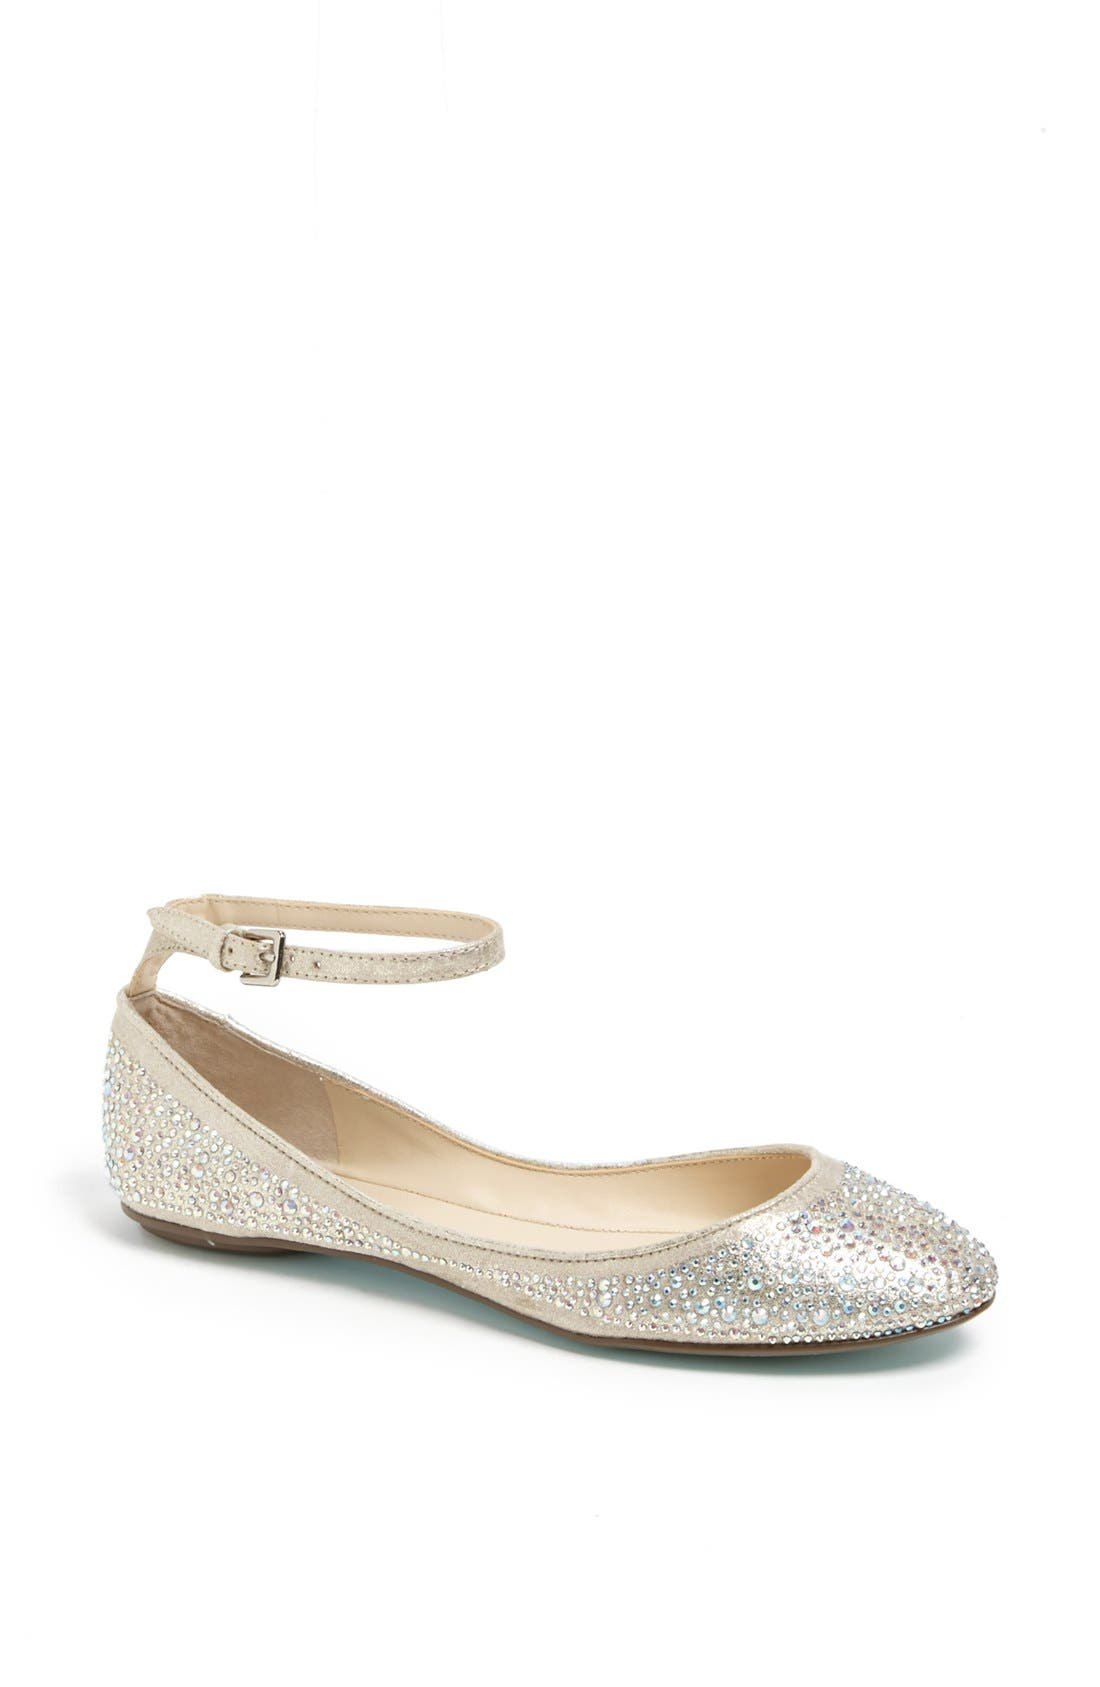 Main Image - Betsey Johnson 'Joy' Ankle Strap Crystal Embellished Flat